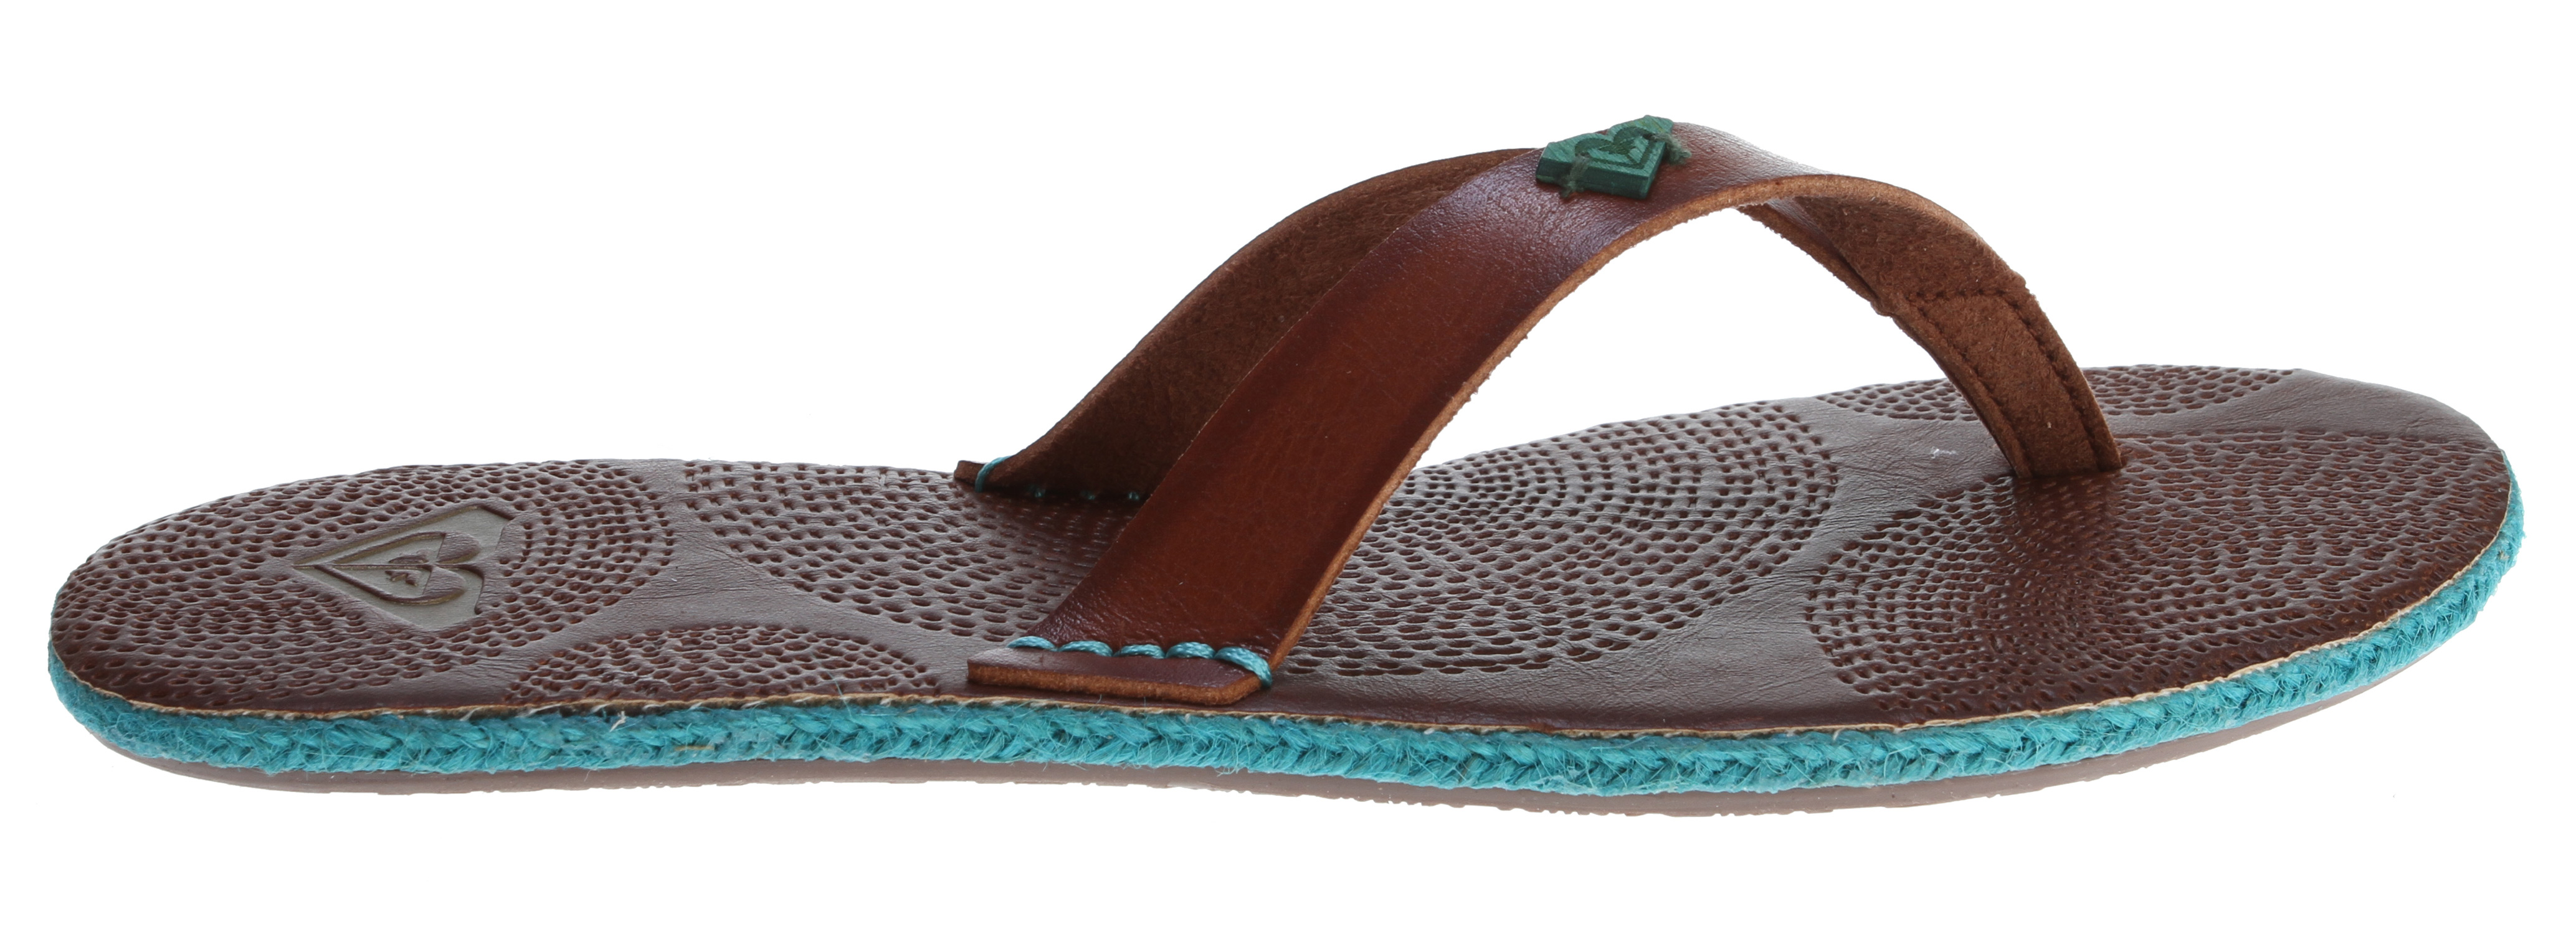 Surf Key Features of the Roxy Santorini Sandals: Soft synthetic upper with wood logo detail Embossed footbed Rope wrap detail around side wall Soft EVA insole TPR outsole - $23.95